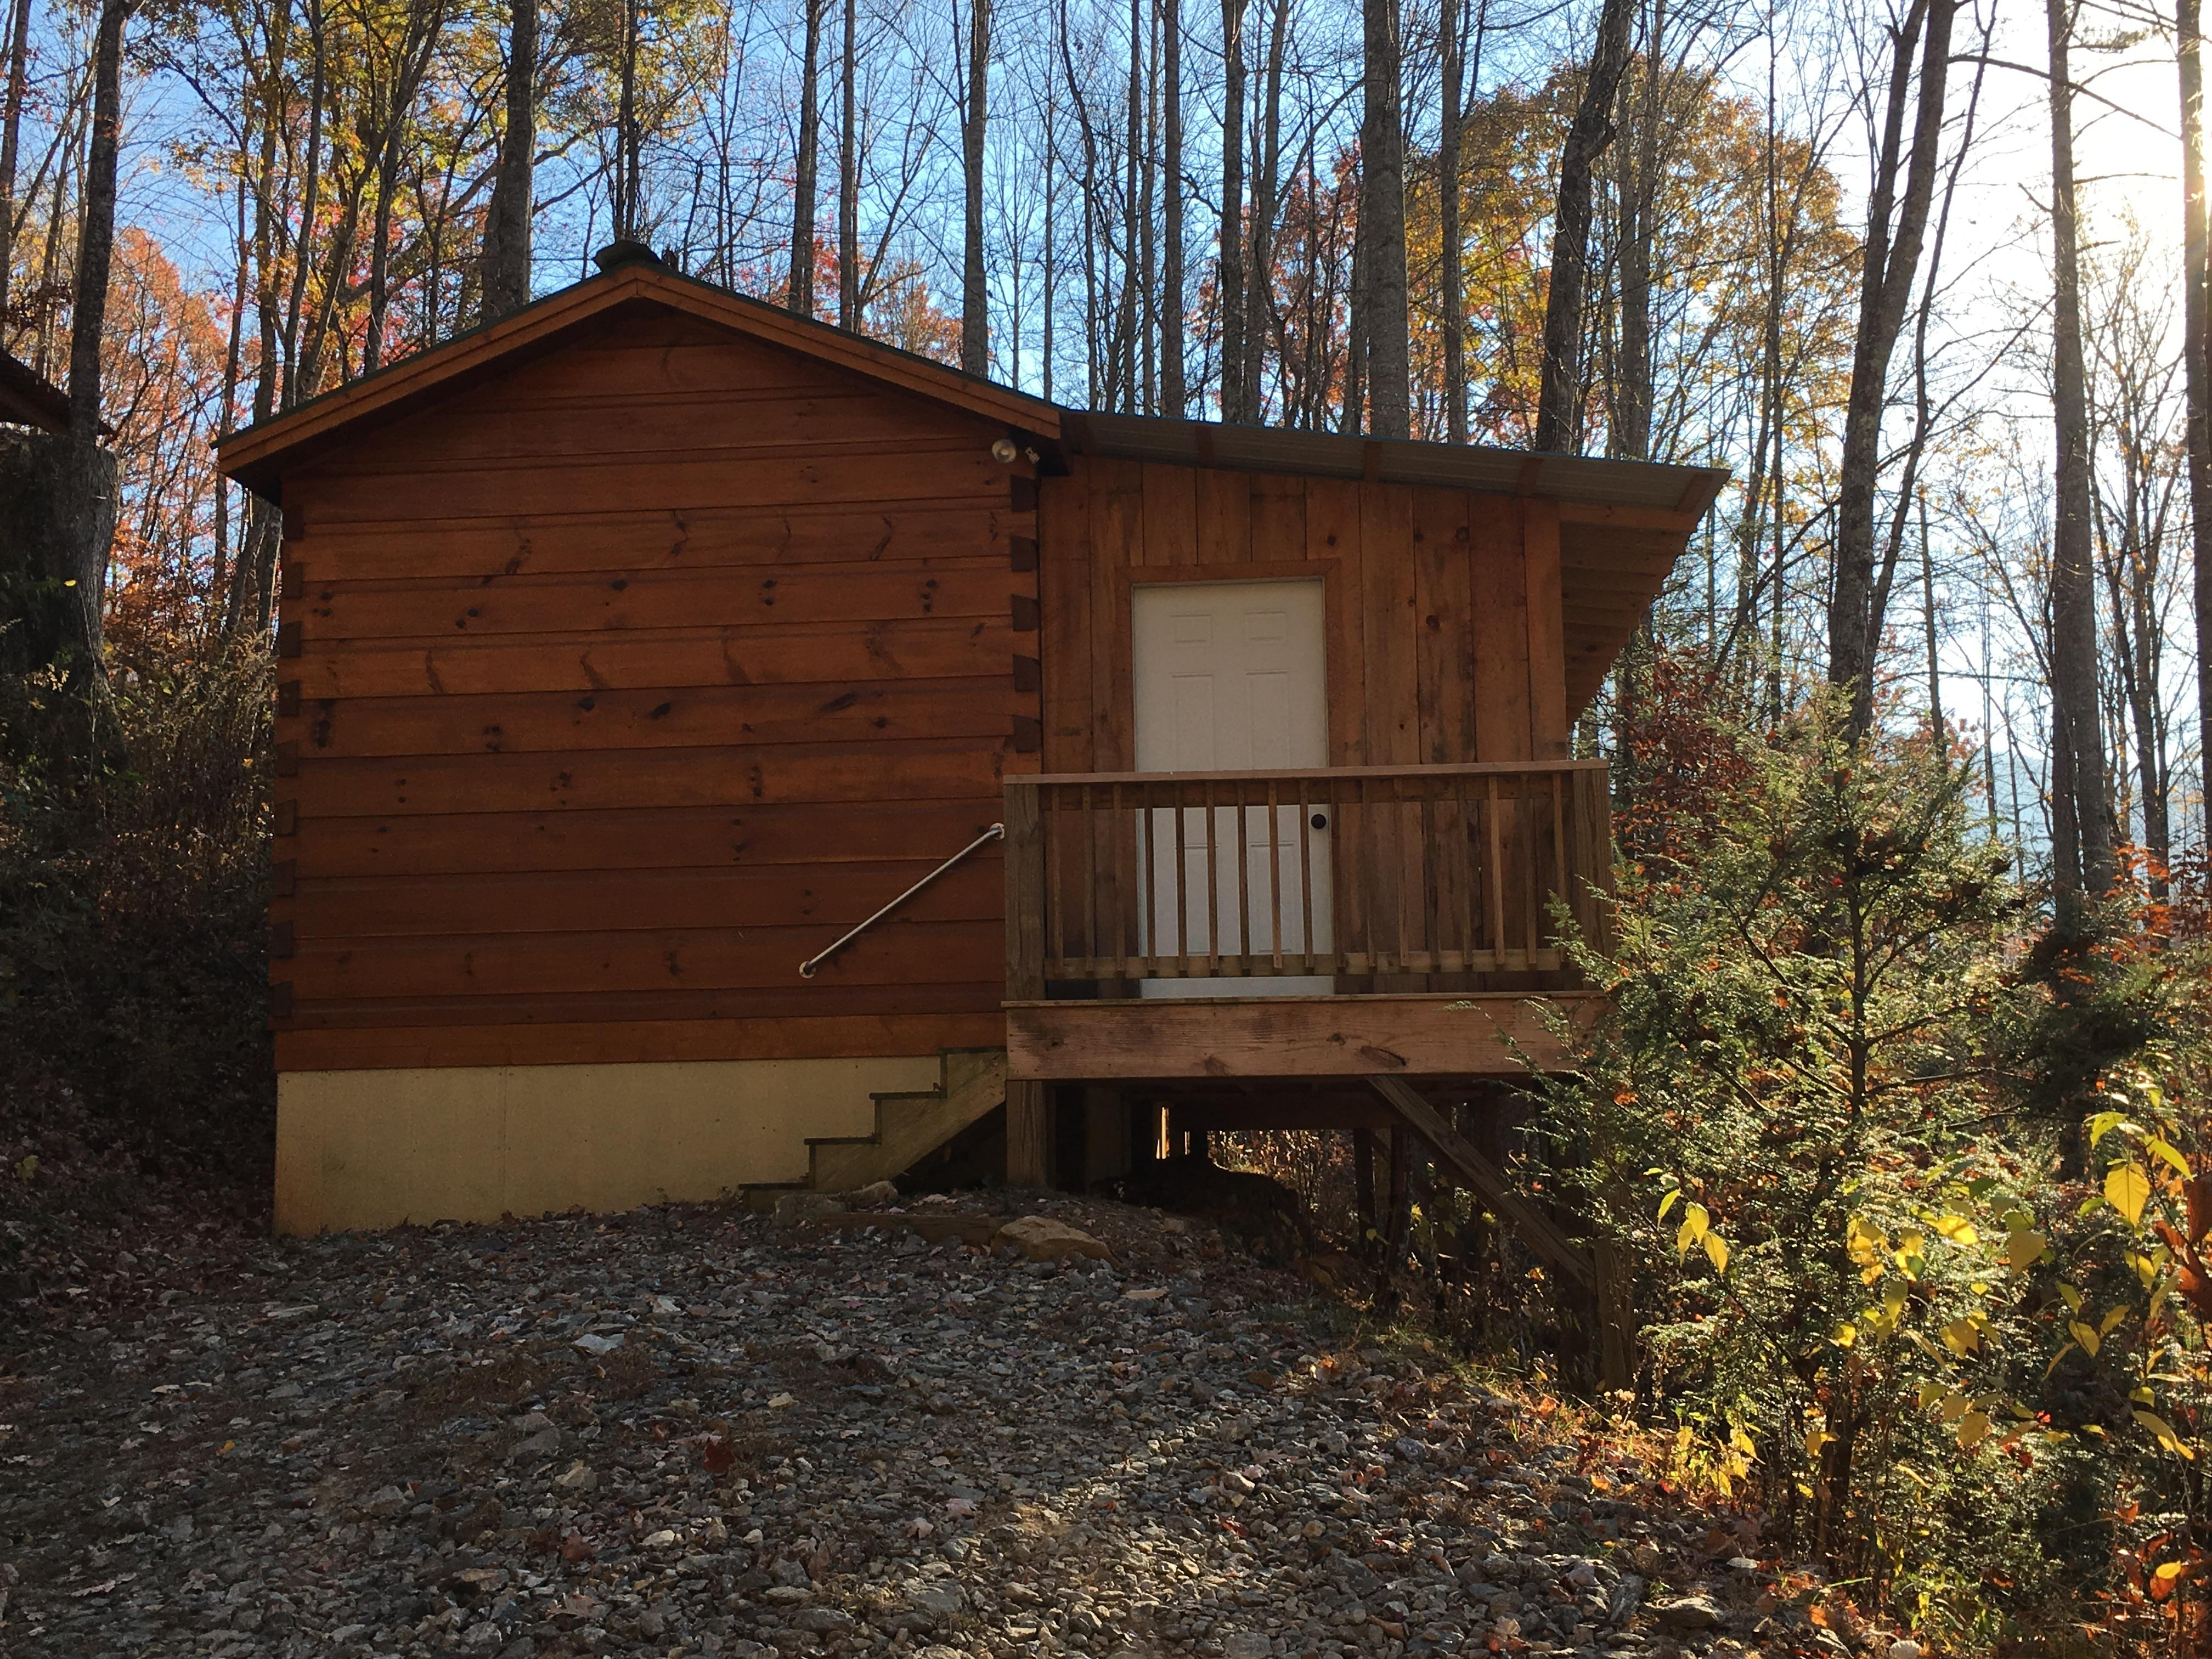 for sale area real homes nc asheville cabins selling and information resources estate img buying